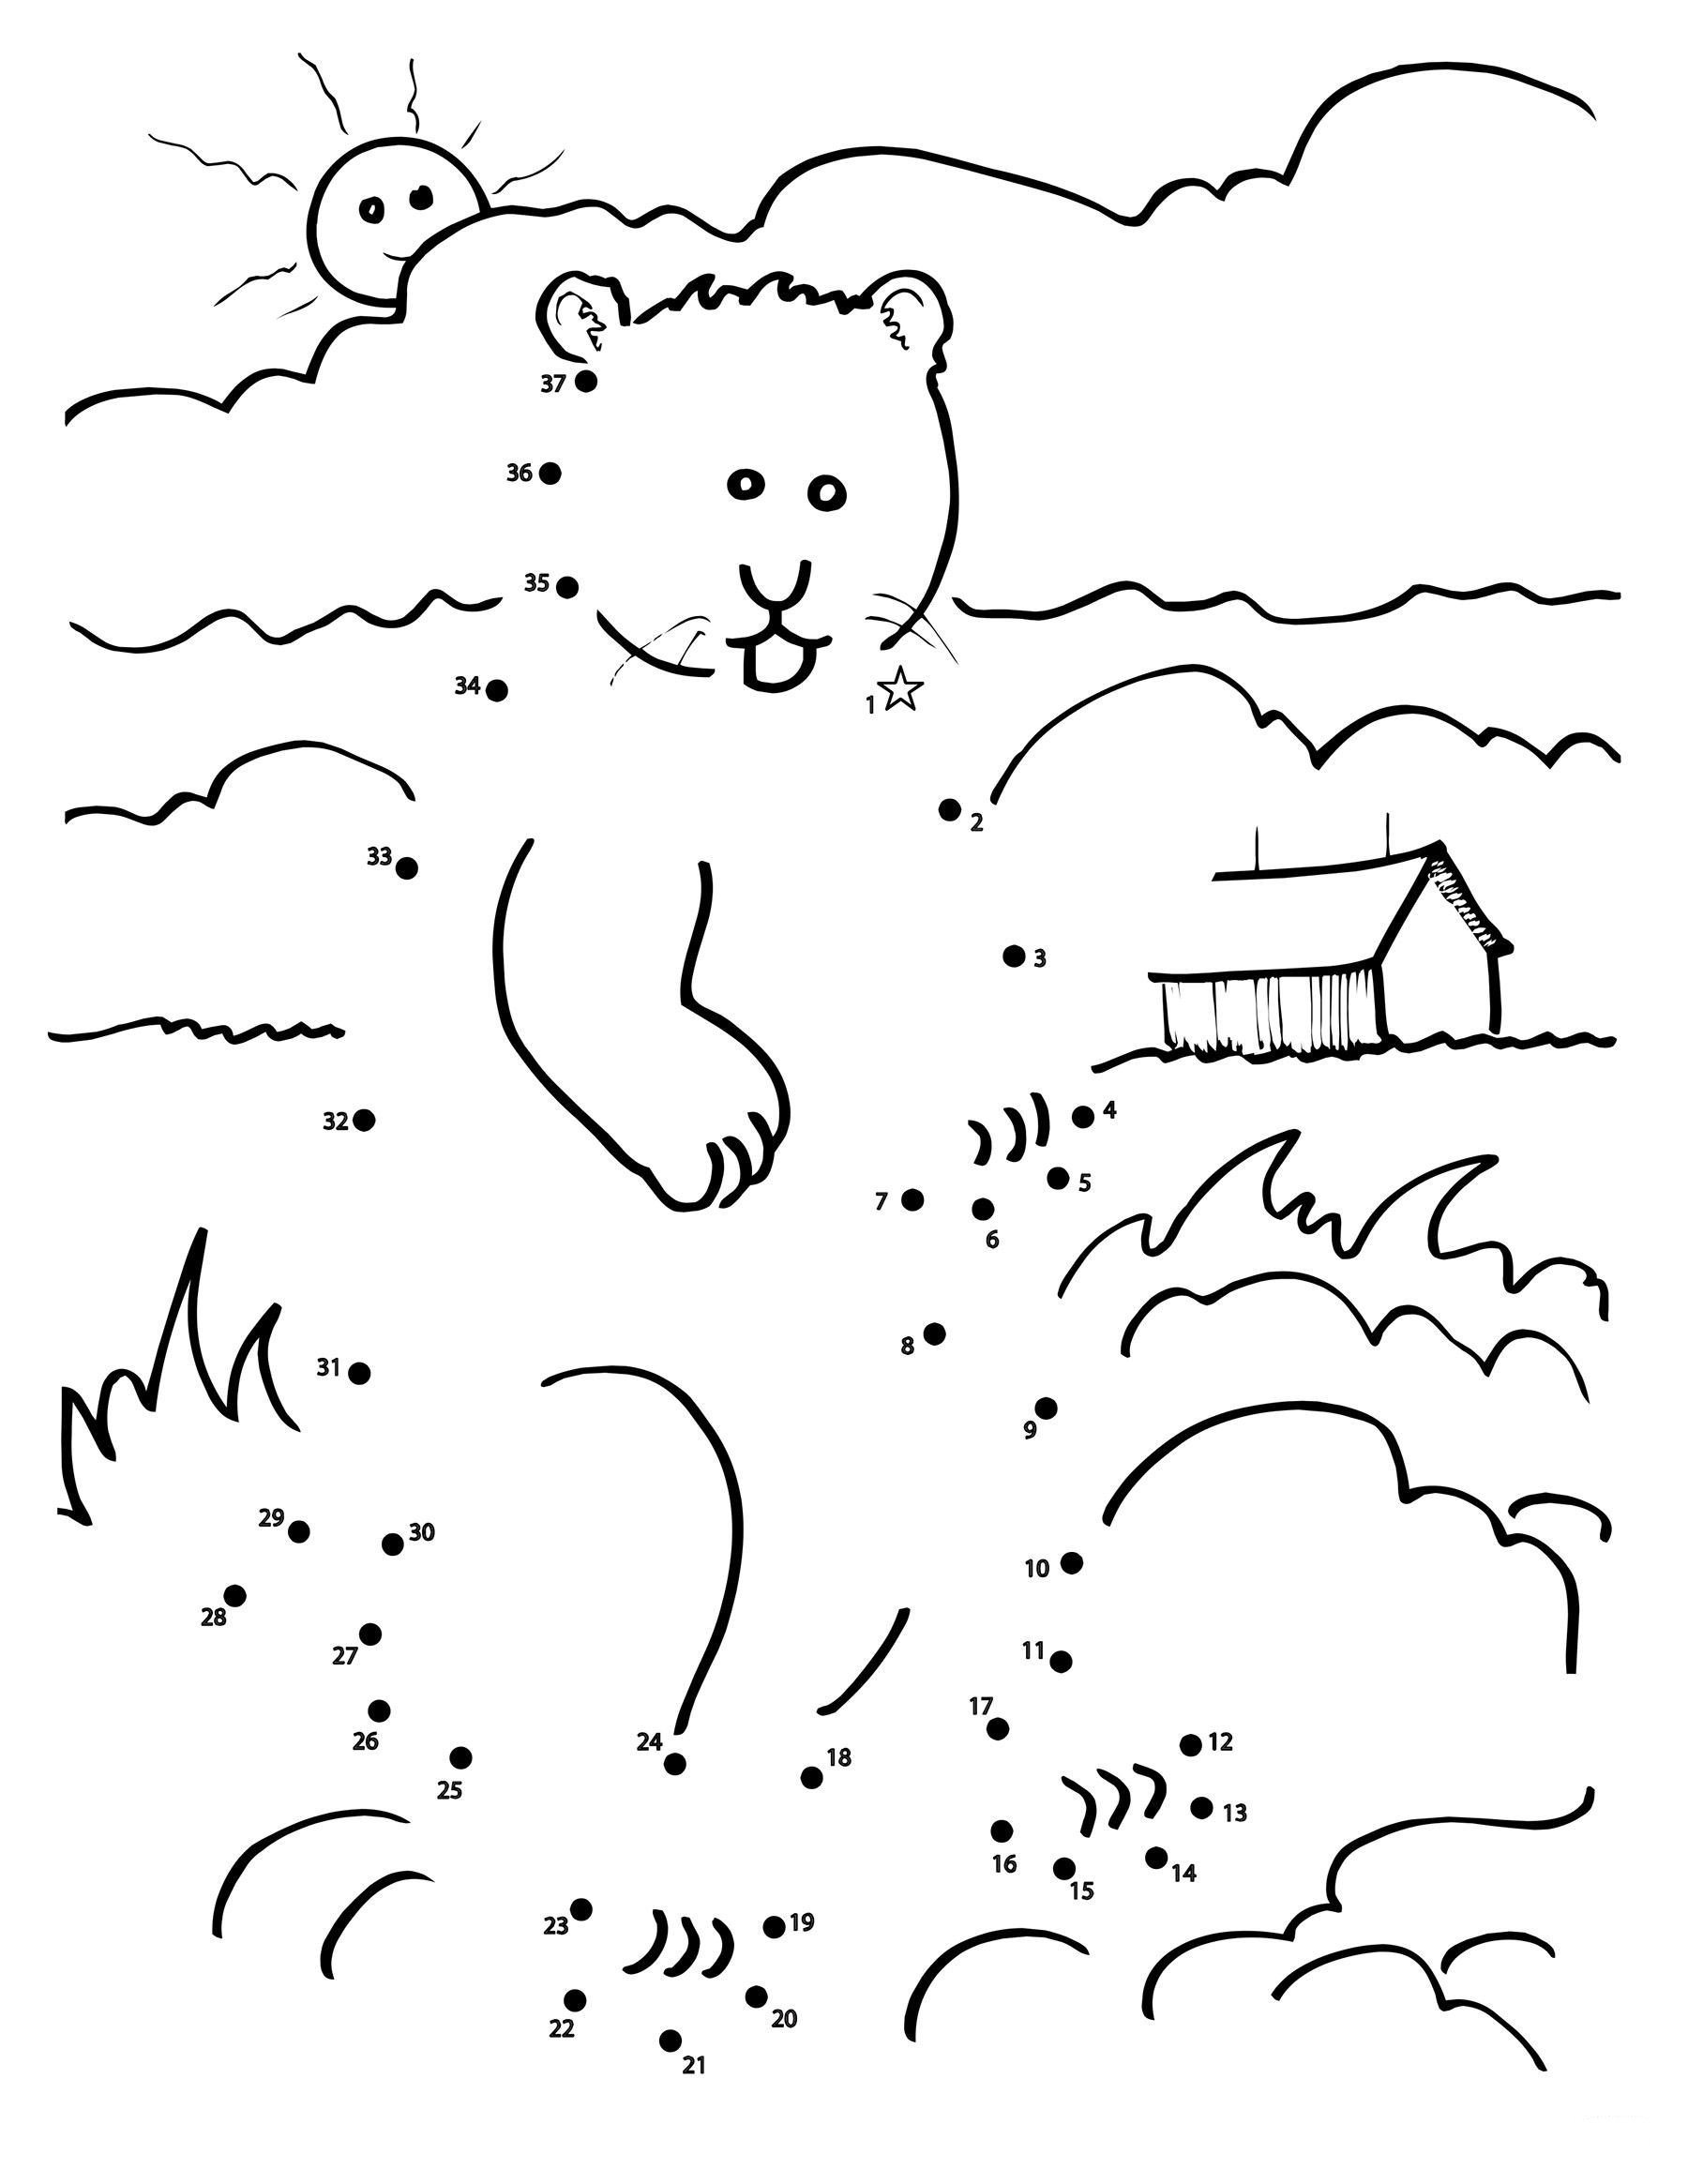 Groundhog Day Connect the Dot Worksheets